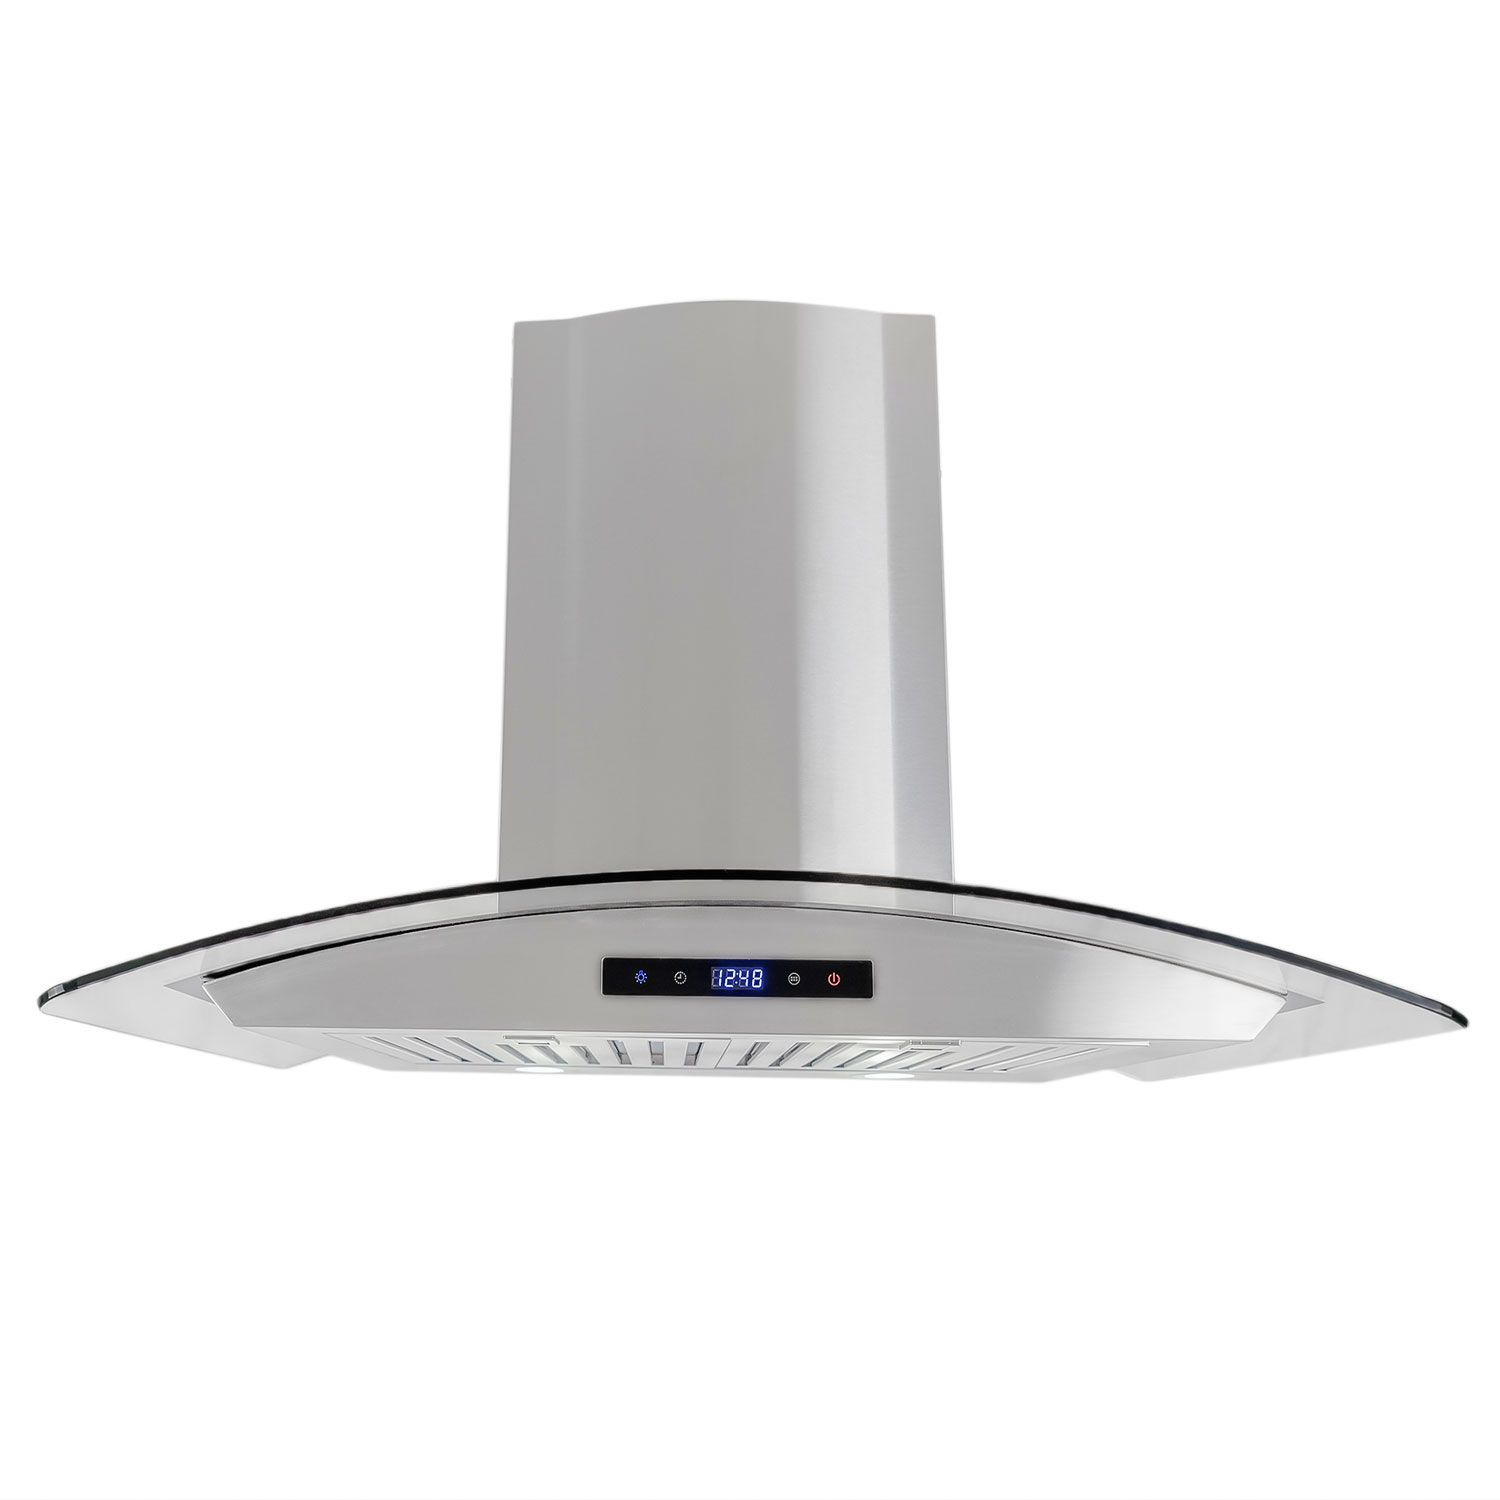 30 In Wall Mount Range Hood With Touch Controls Cosmo Appliances Cos 668as750 Wall Mount Range Hood Range Hood Led Lights